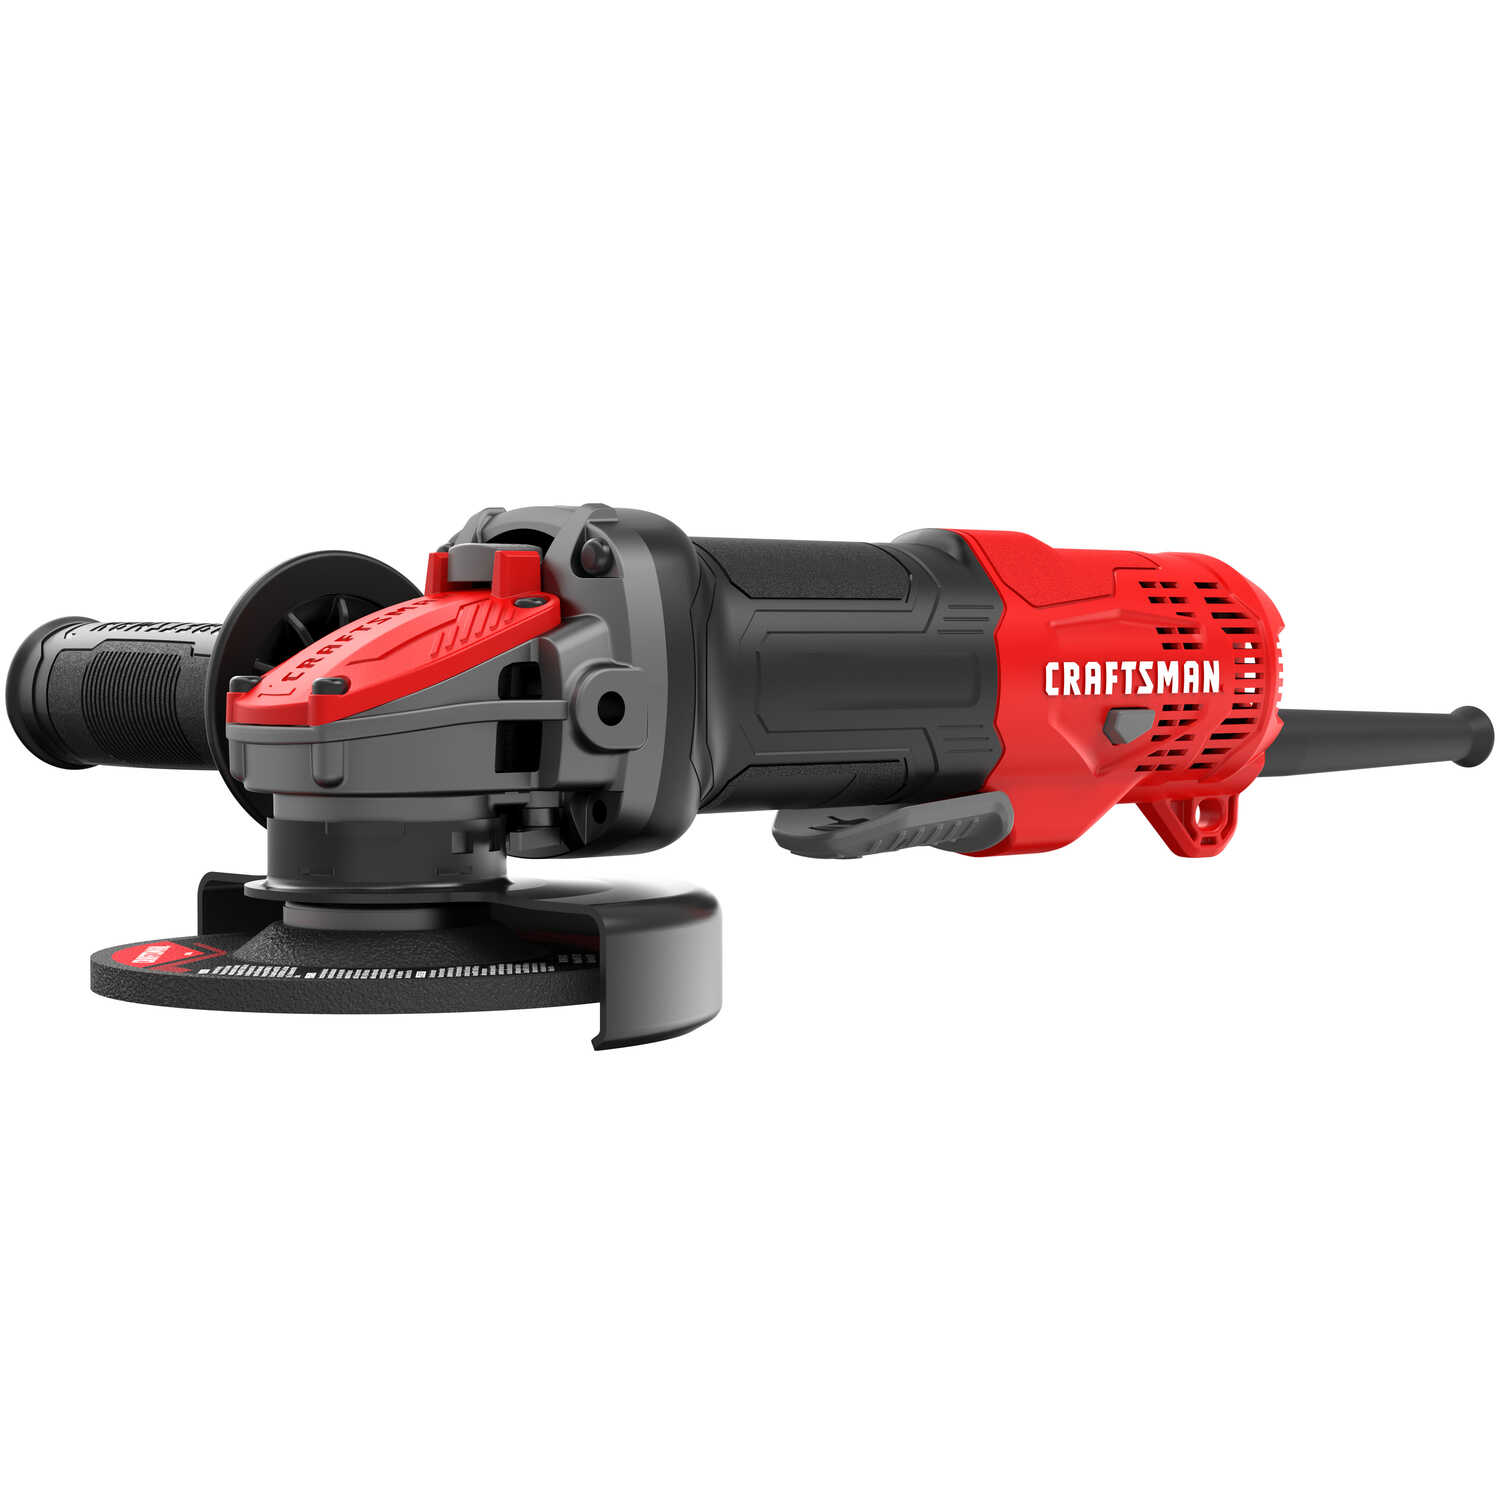 Craftsman  4-1/2 in. Corded  Angle Grinder  12000 rpm